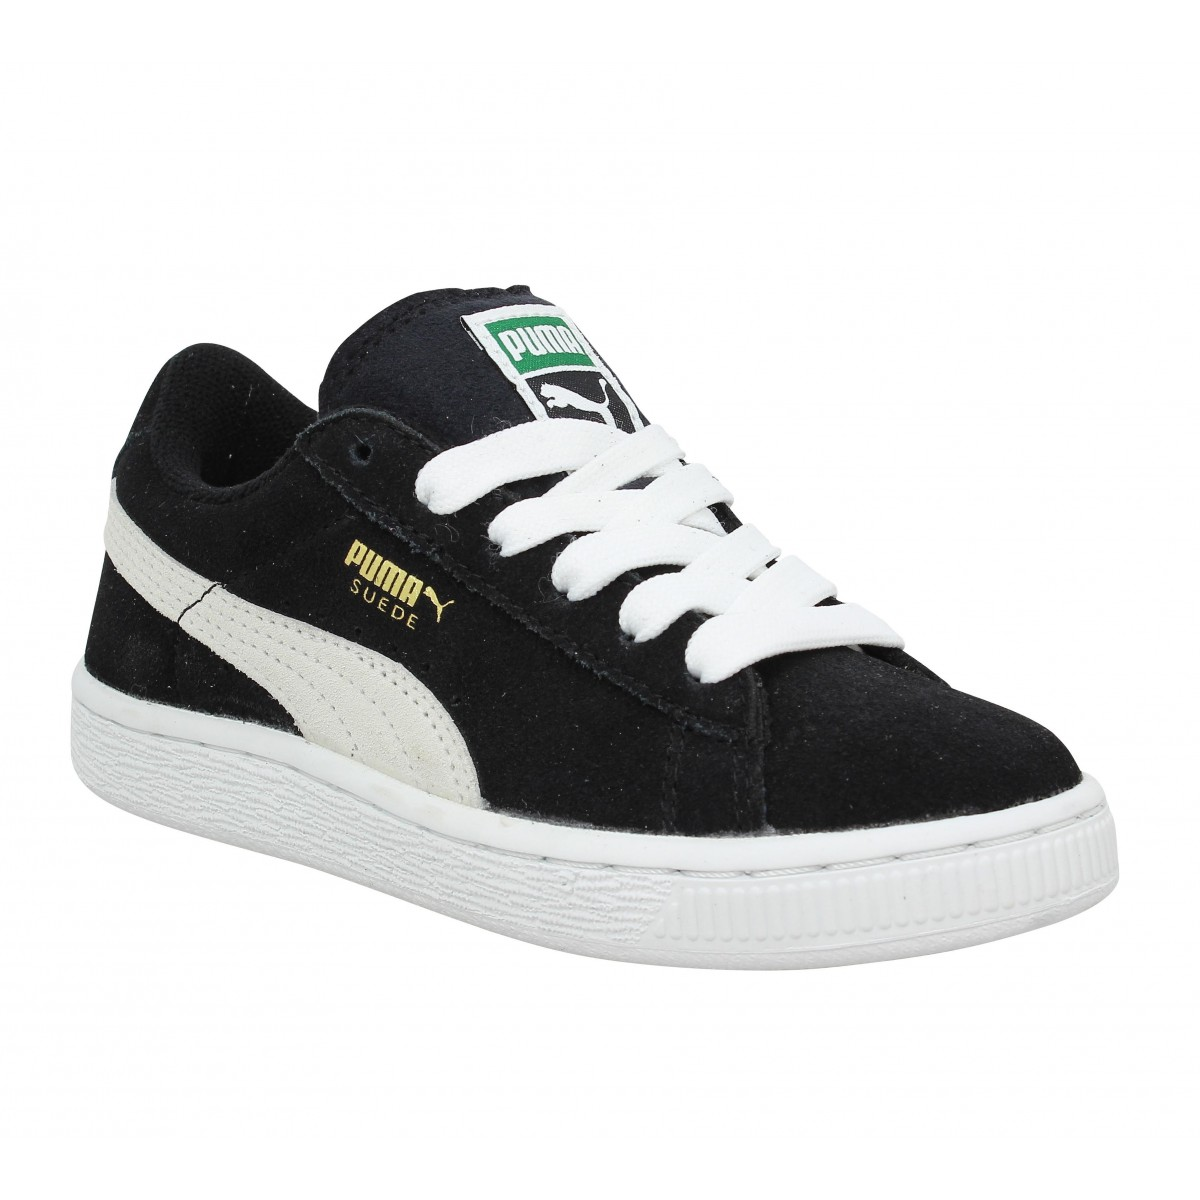 Baskets PUMA Suede JR Noir